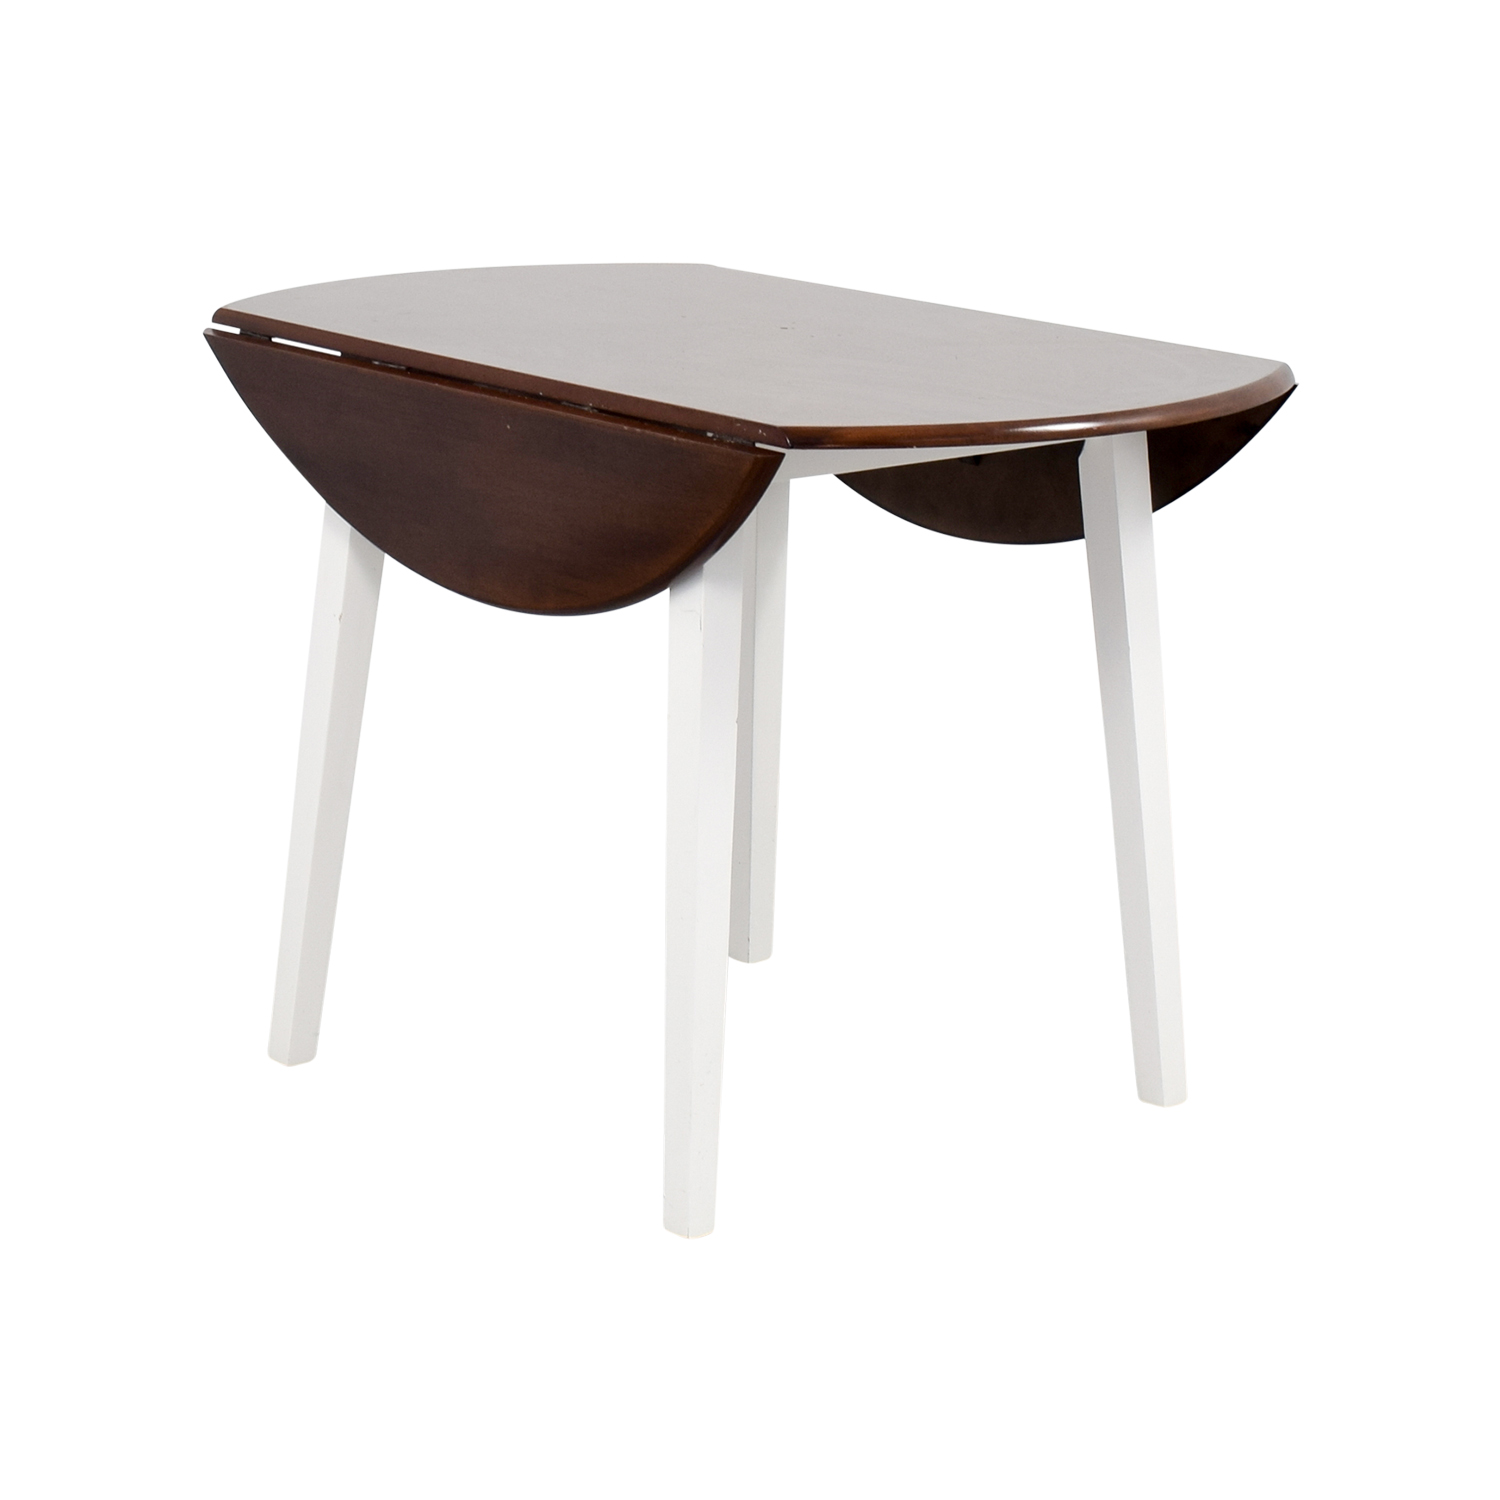 82 OFF  Bobs Furniture Bobs Furniture Round Folding